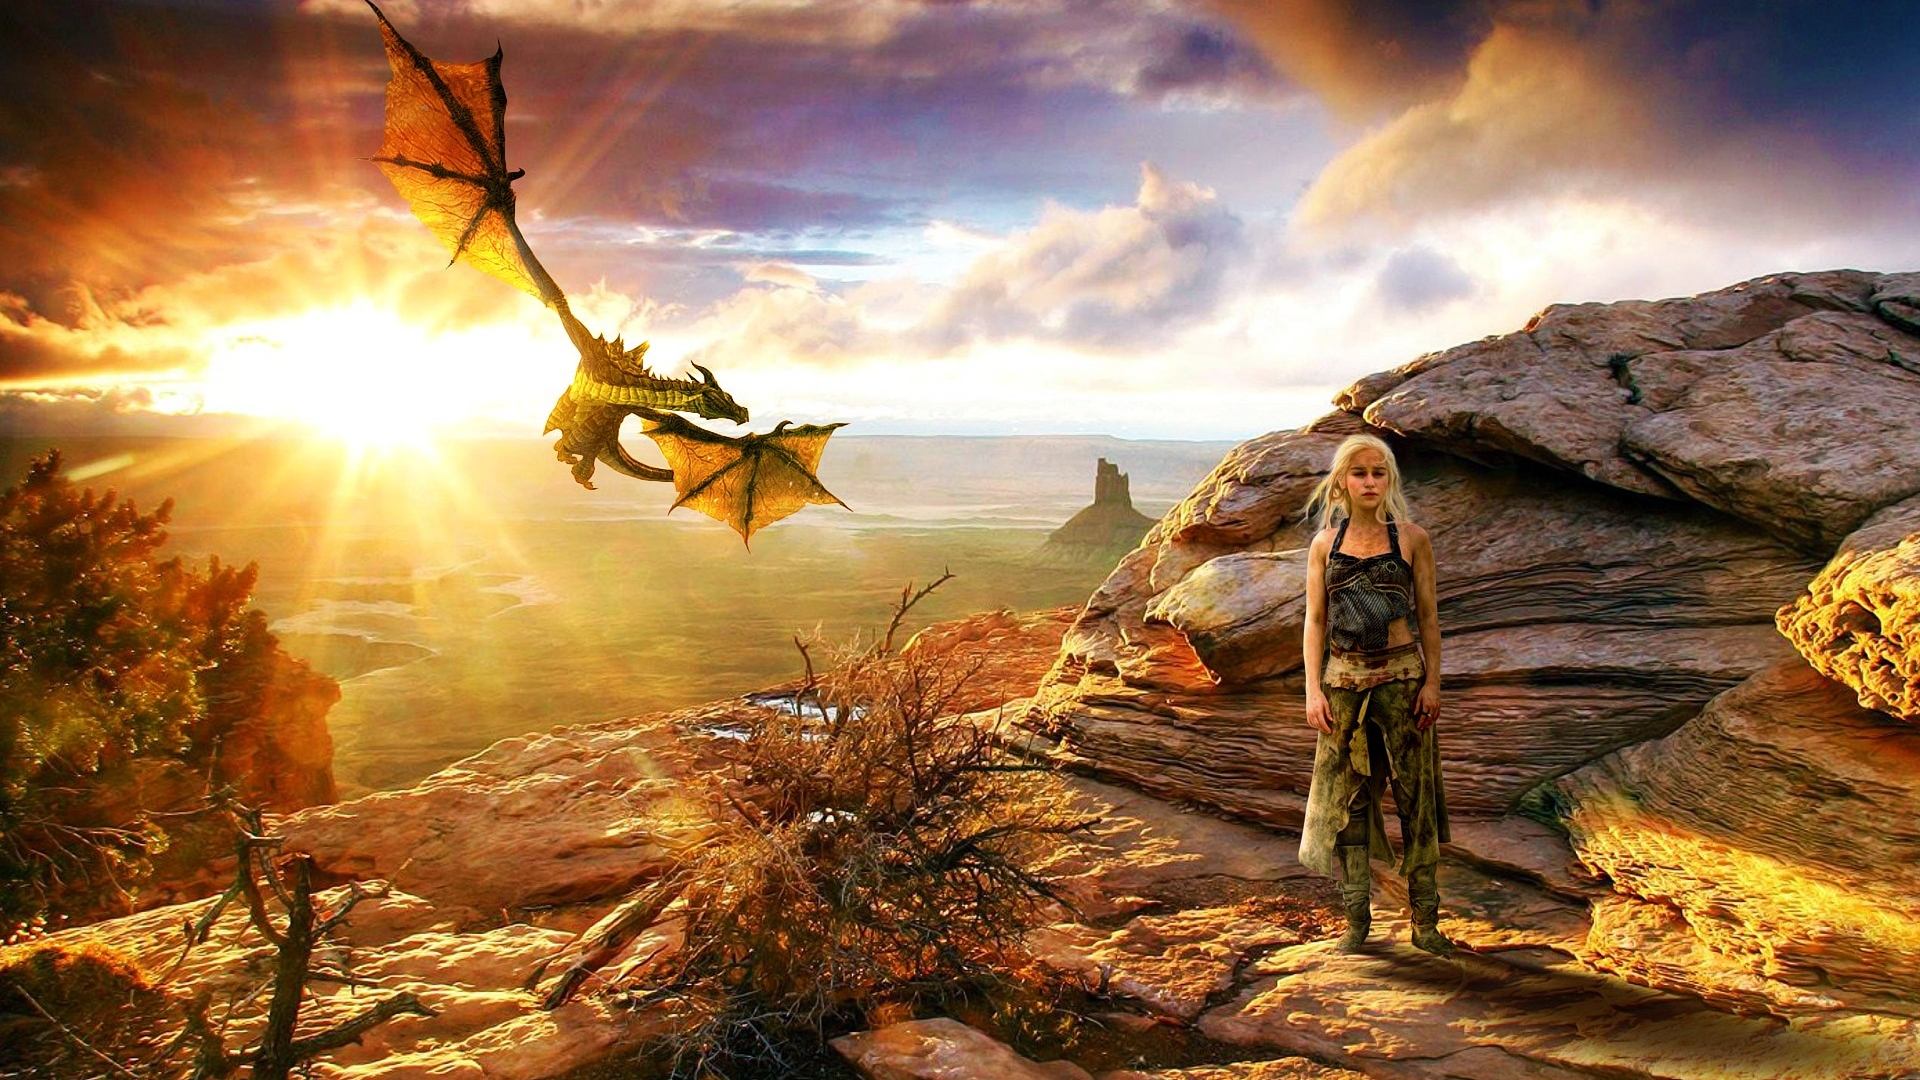 Game Of Thrones Photo  Wallpaper High Definition Quality Widescreen